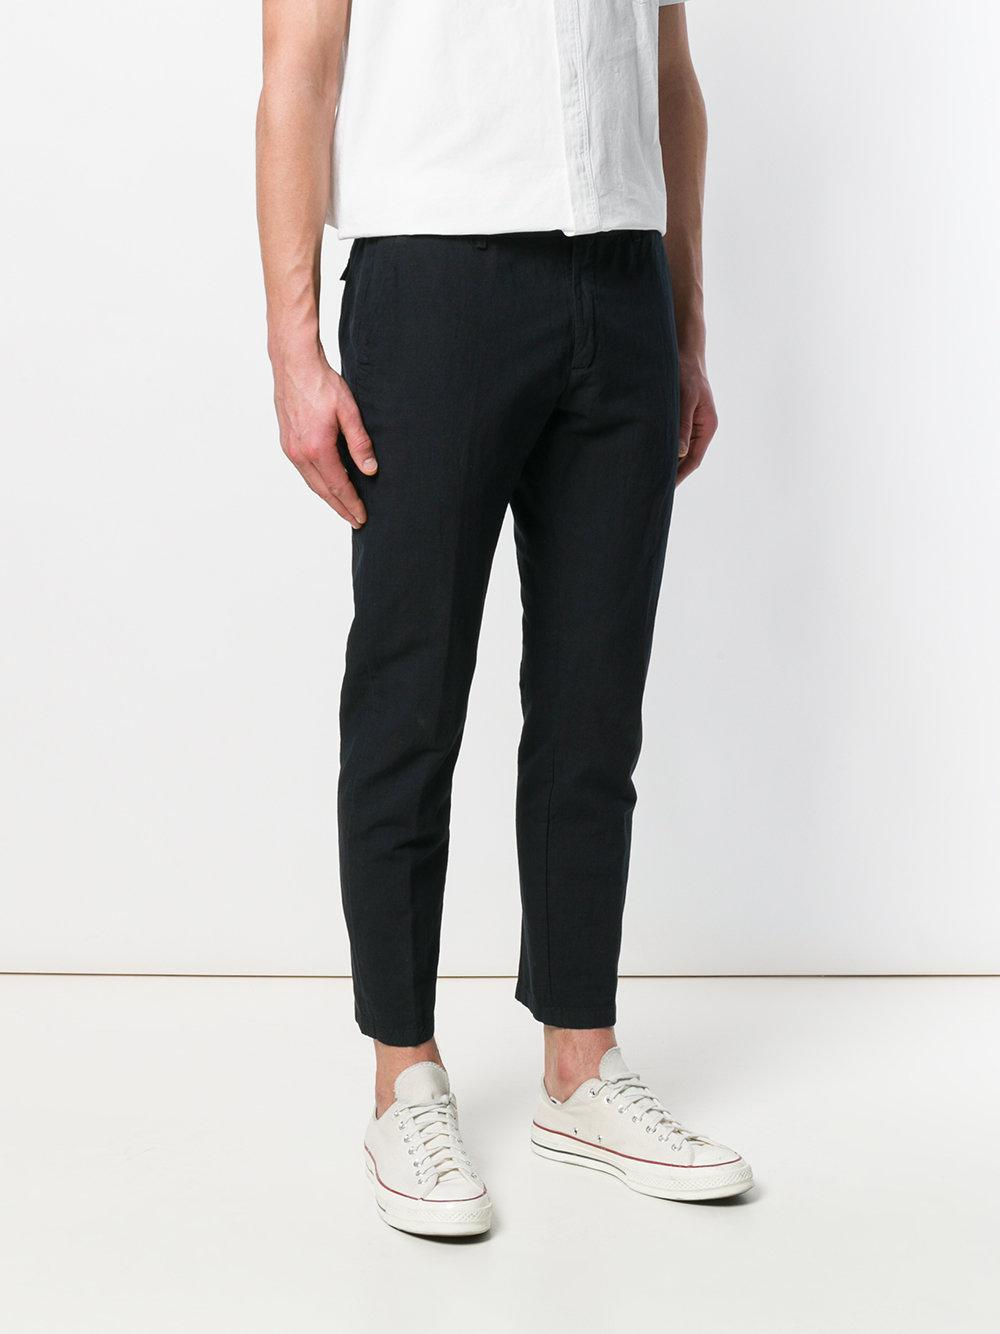 cropped trousers - Blue Department 5 nlyW1RK